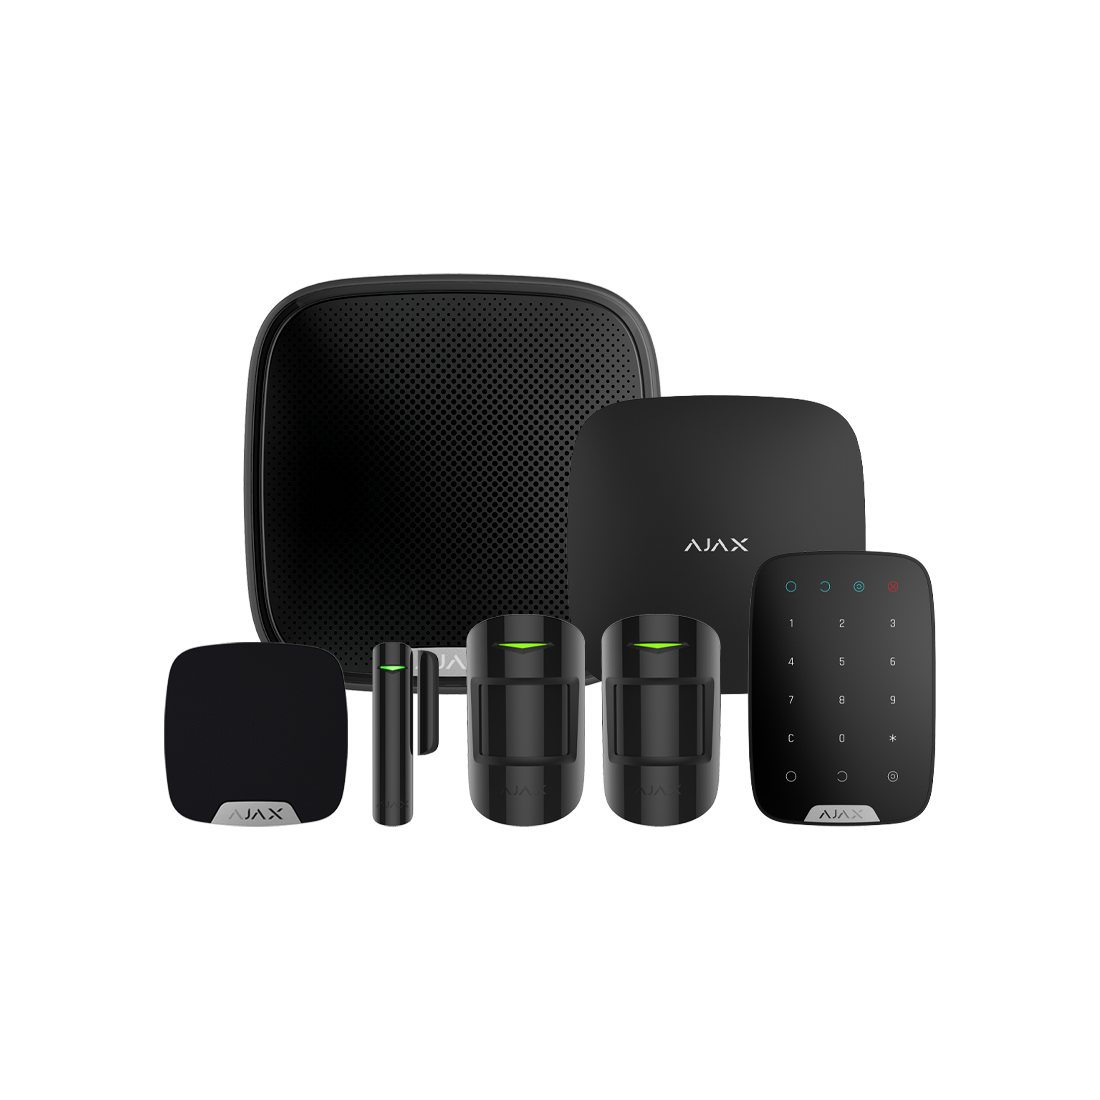 Ajax Wireless Alarms